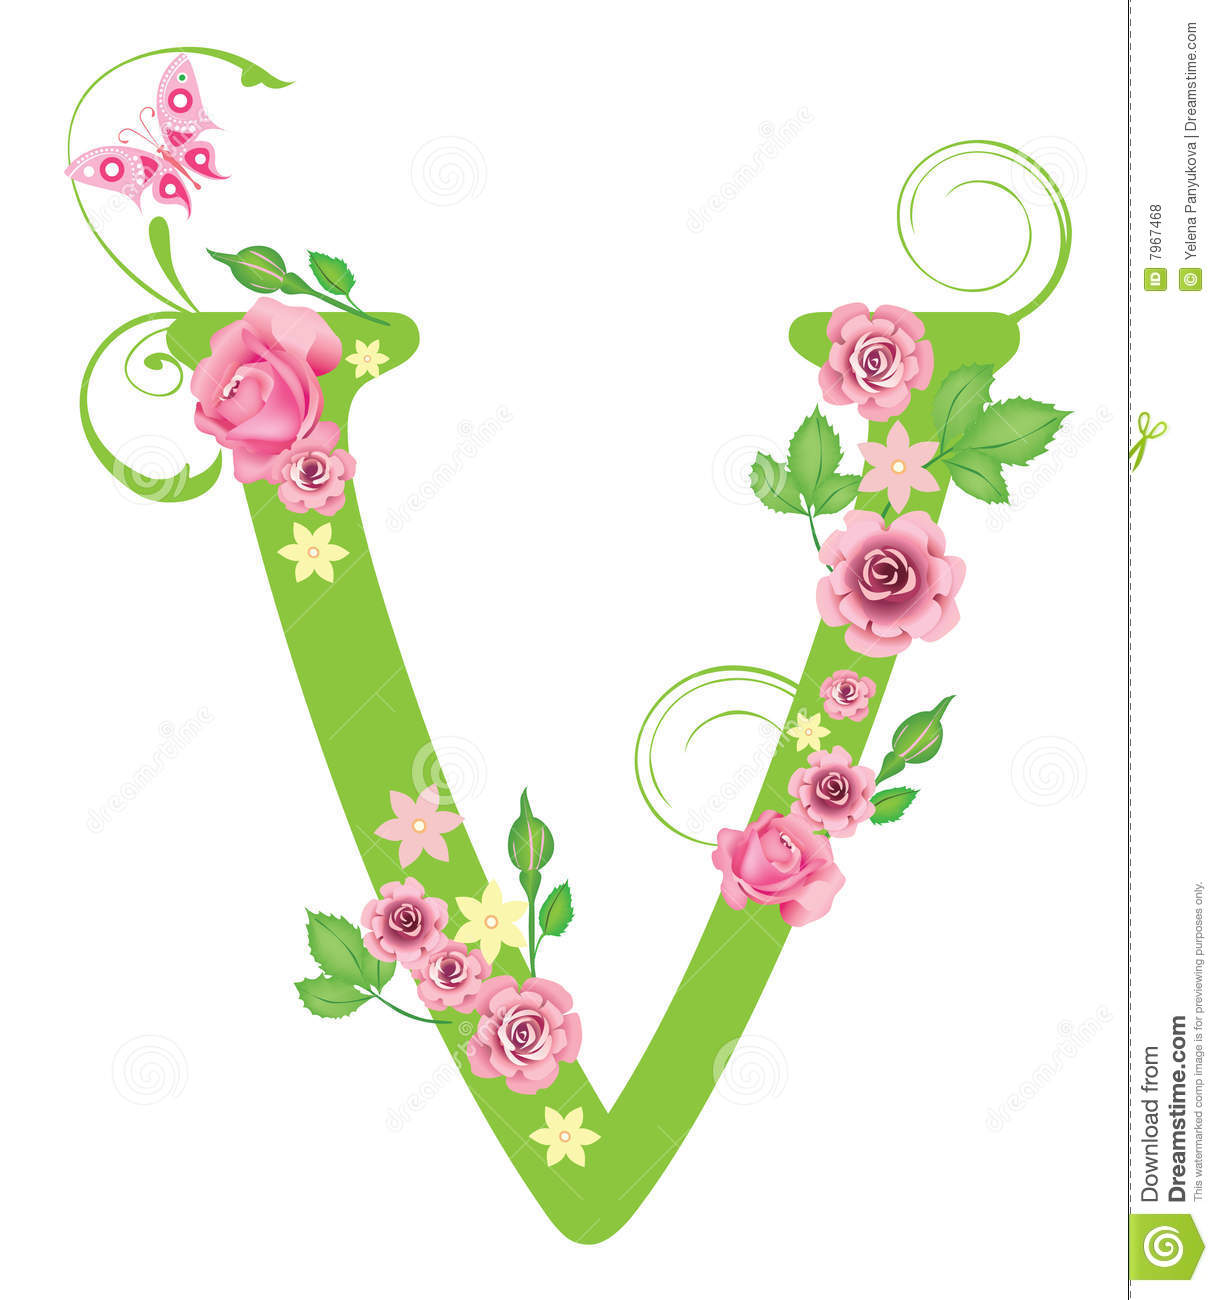 Letter v with roses stock vector illustration of flower 7967468 letter v with roses altavistaventures Choice Image